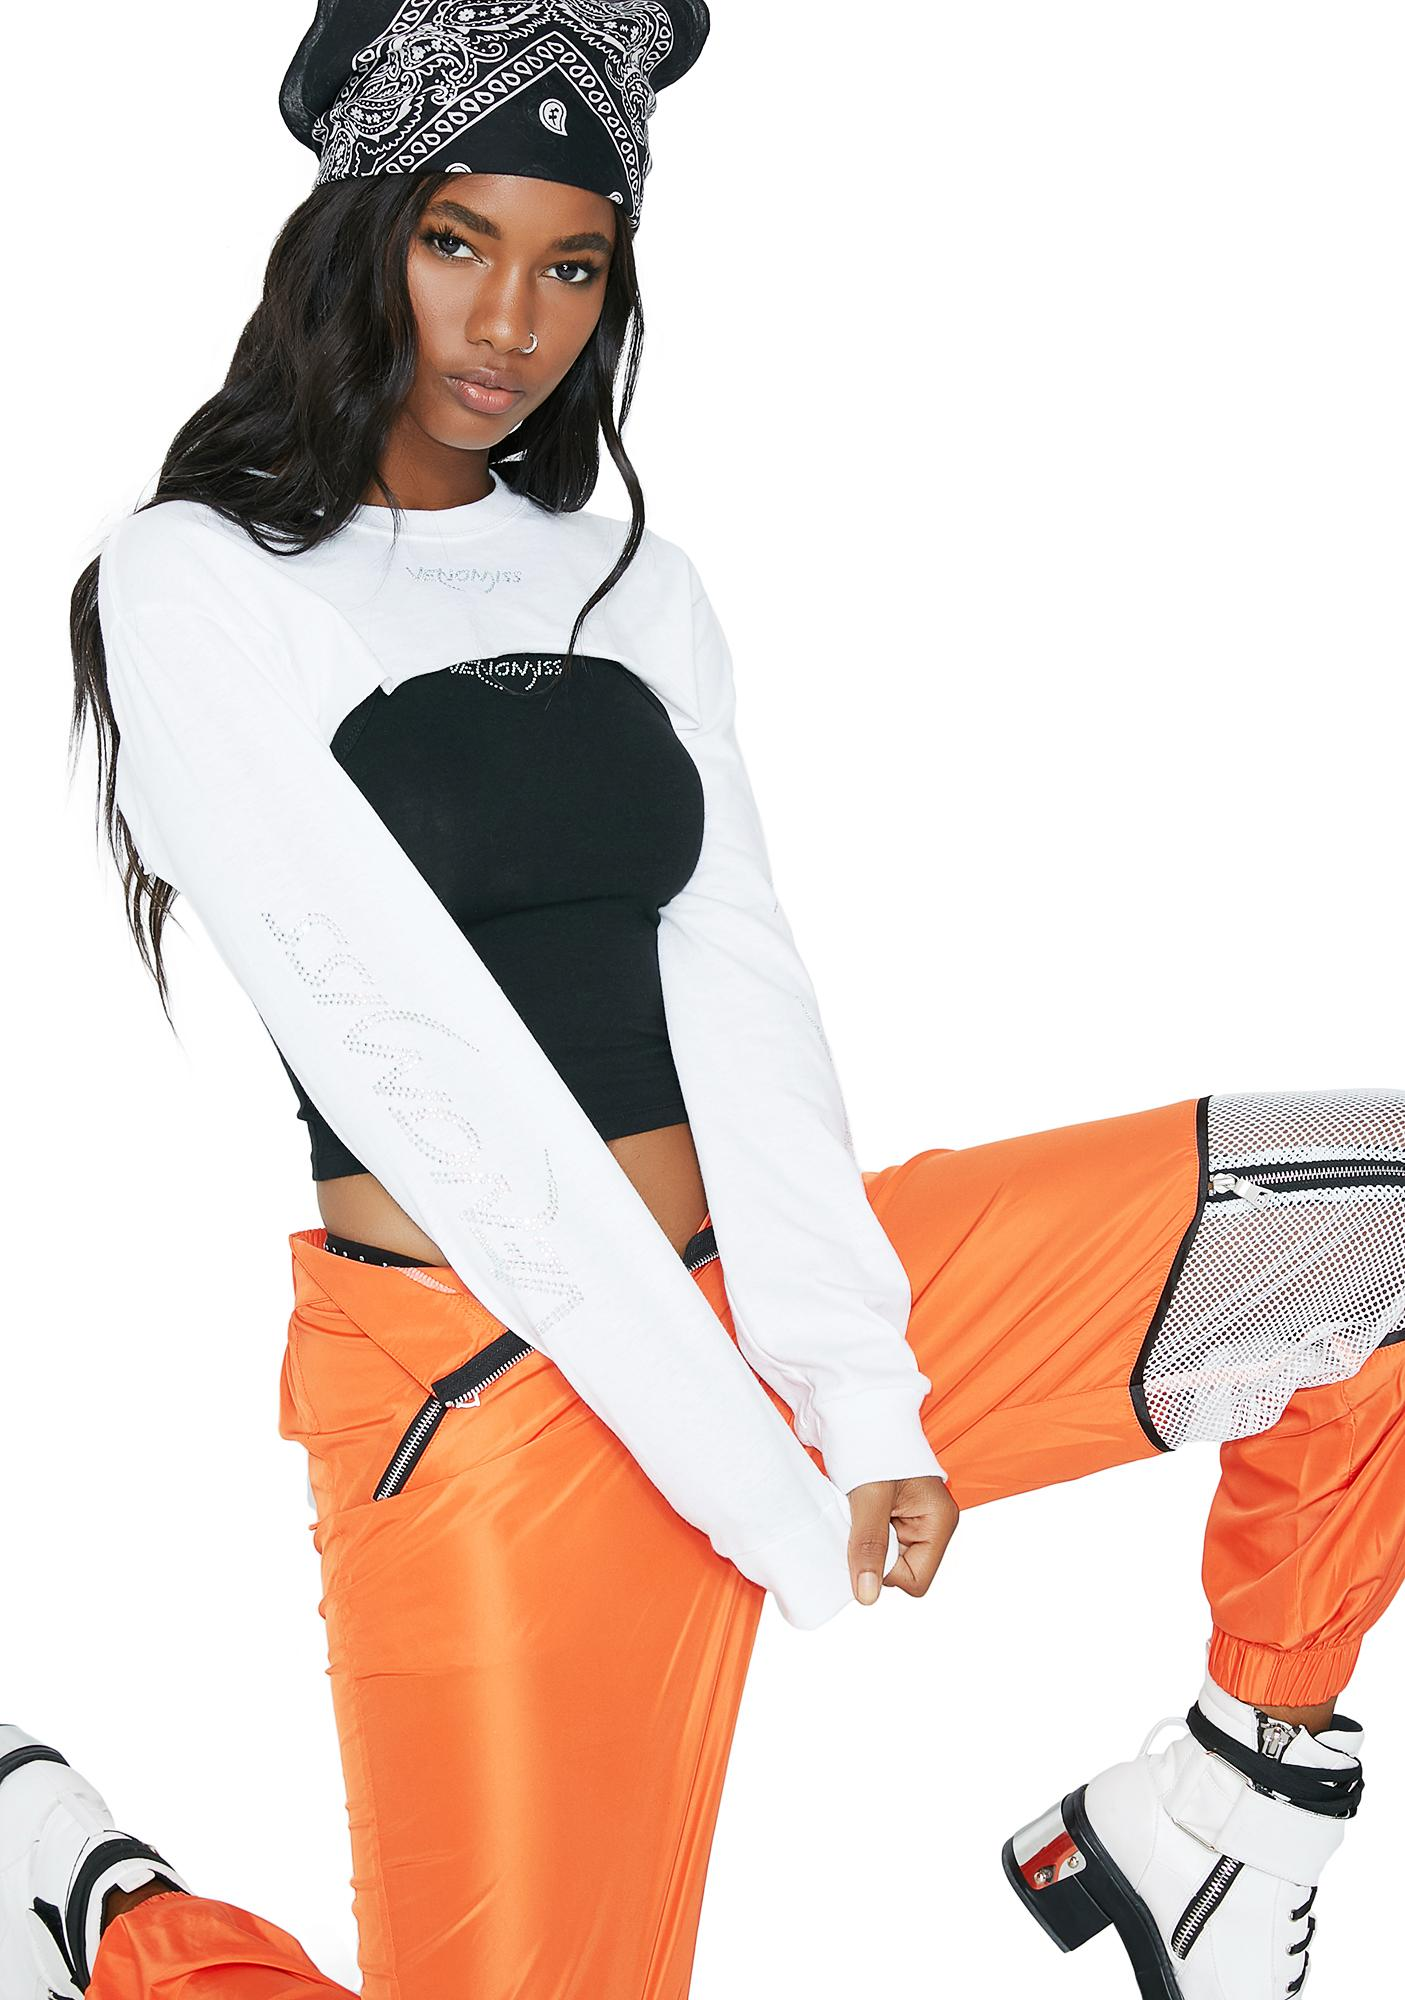 Venomiss NYC Super Cropped Long Sleeve Tee